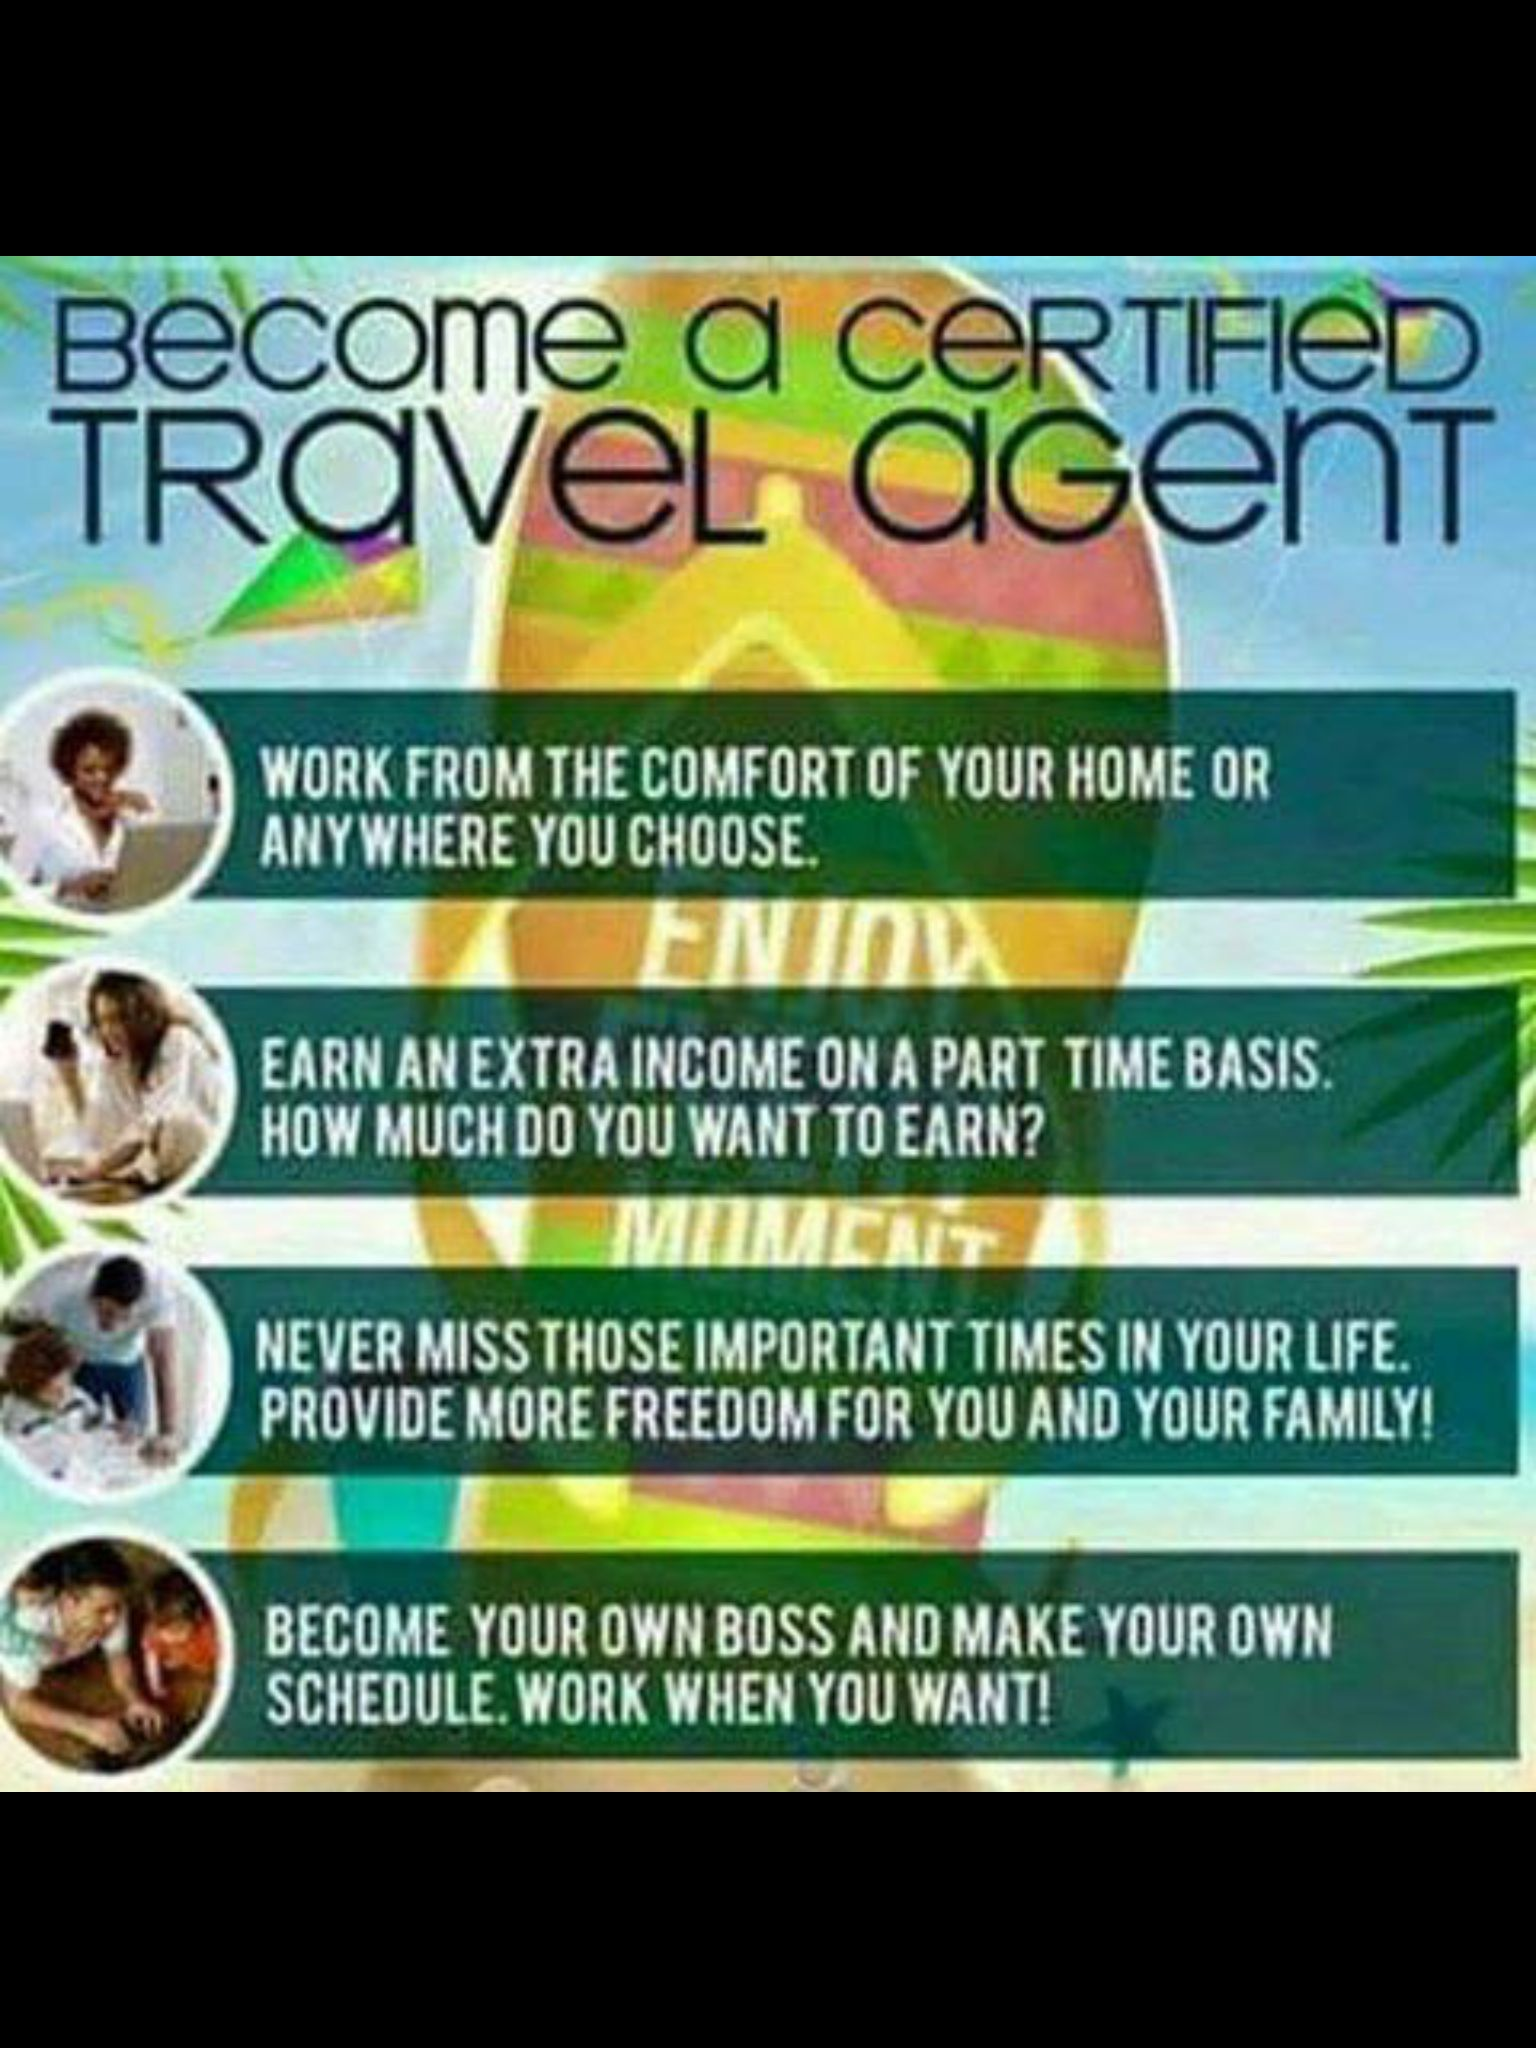 For more info about becoming a Travel Agent, message me! You